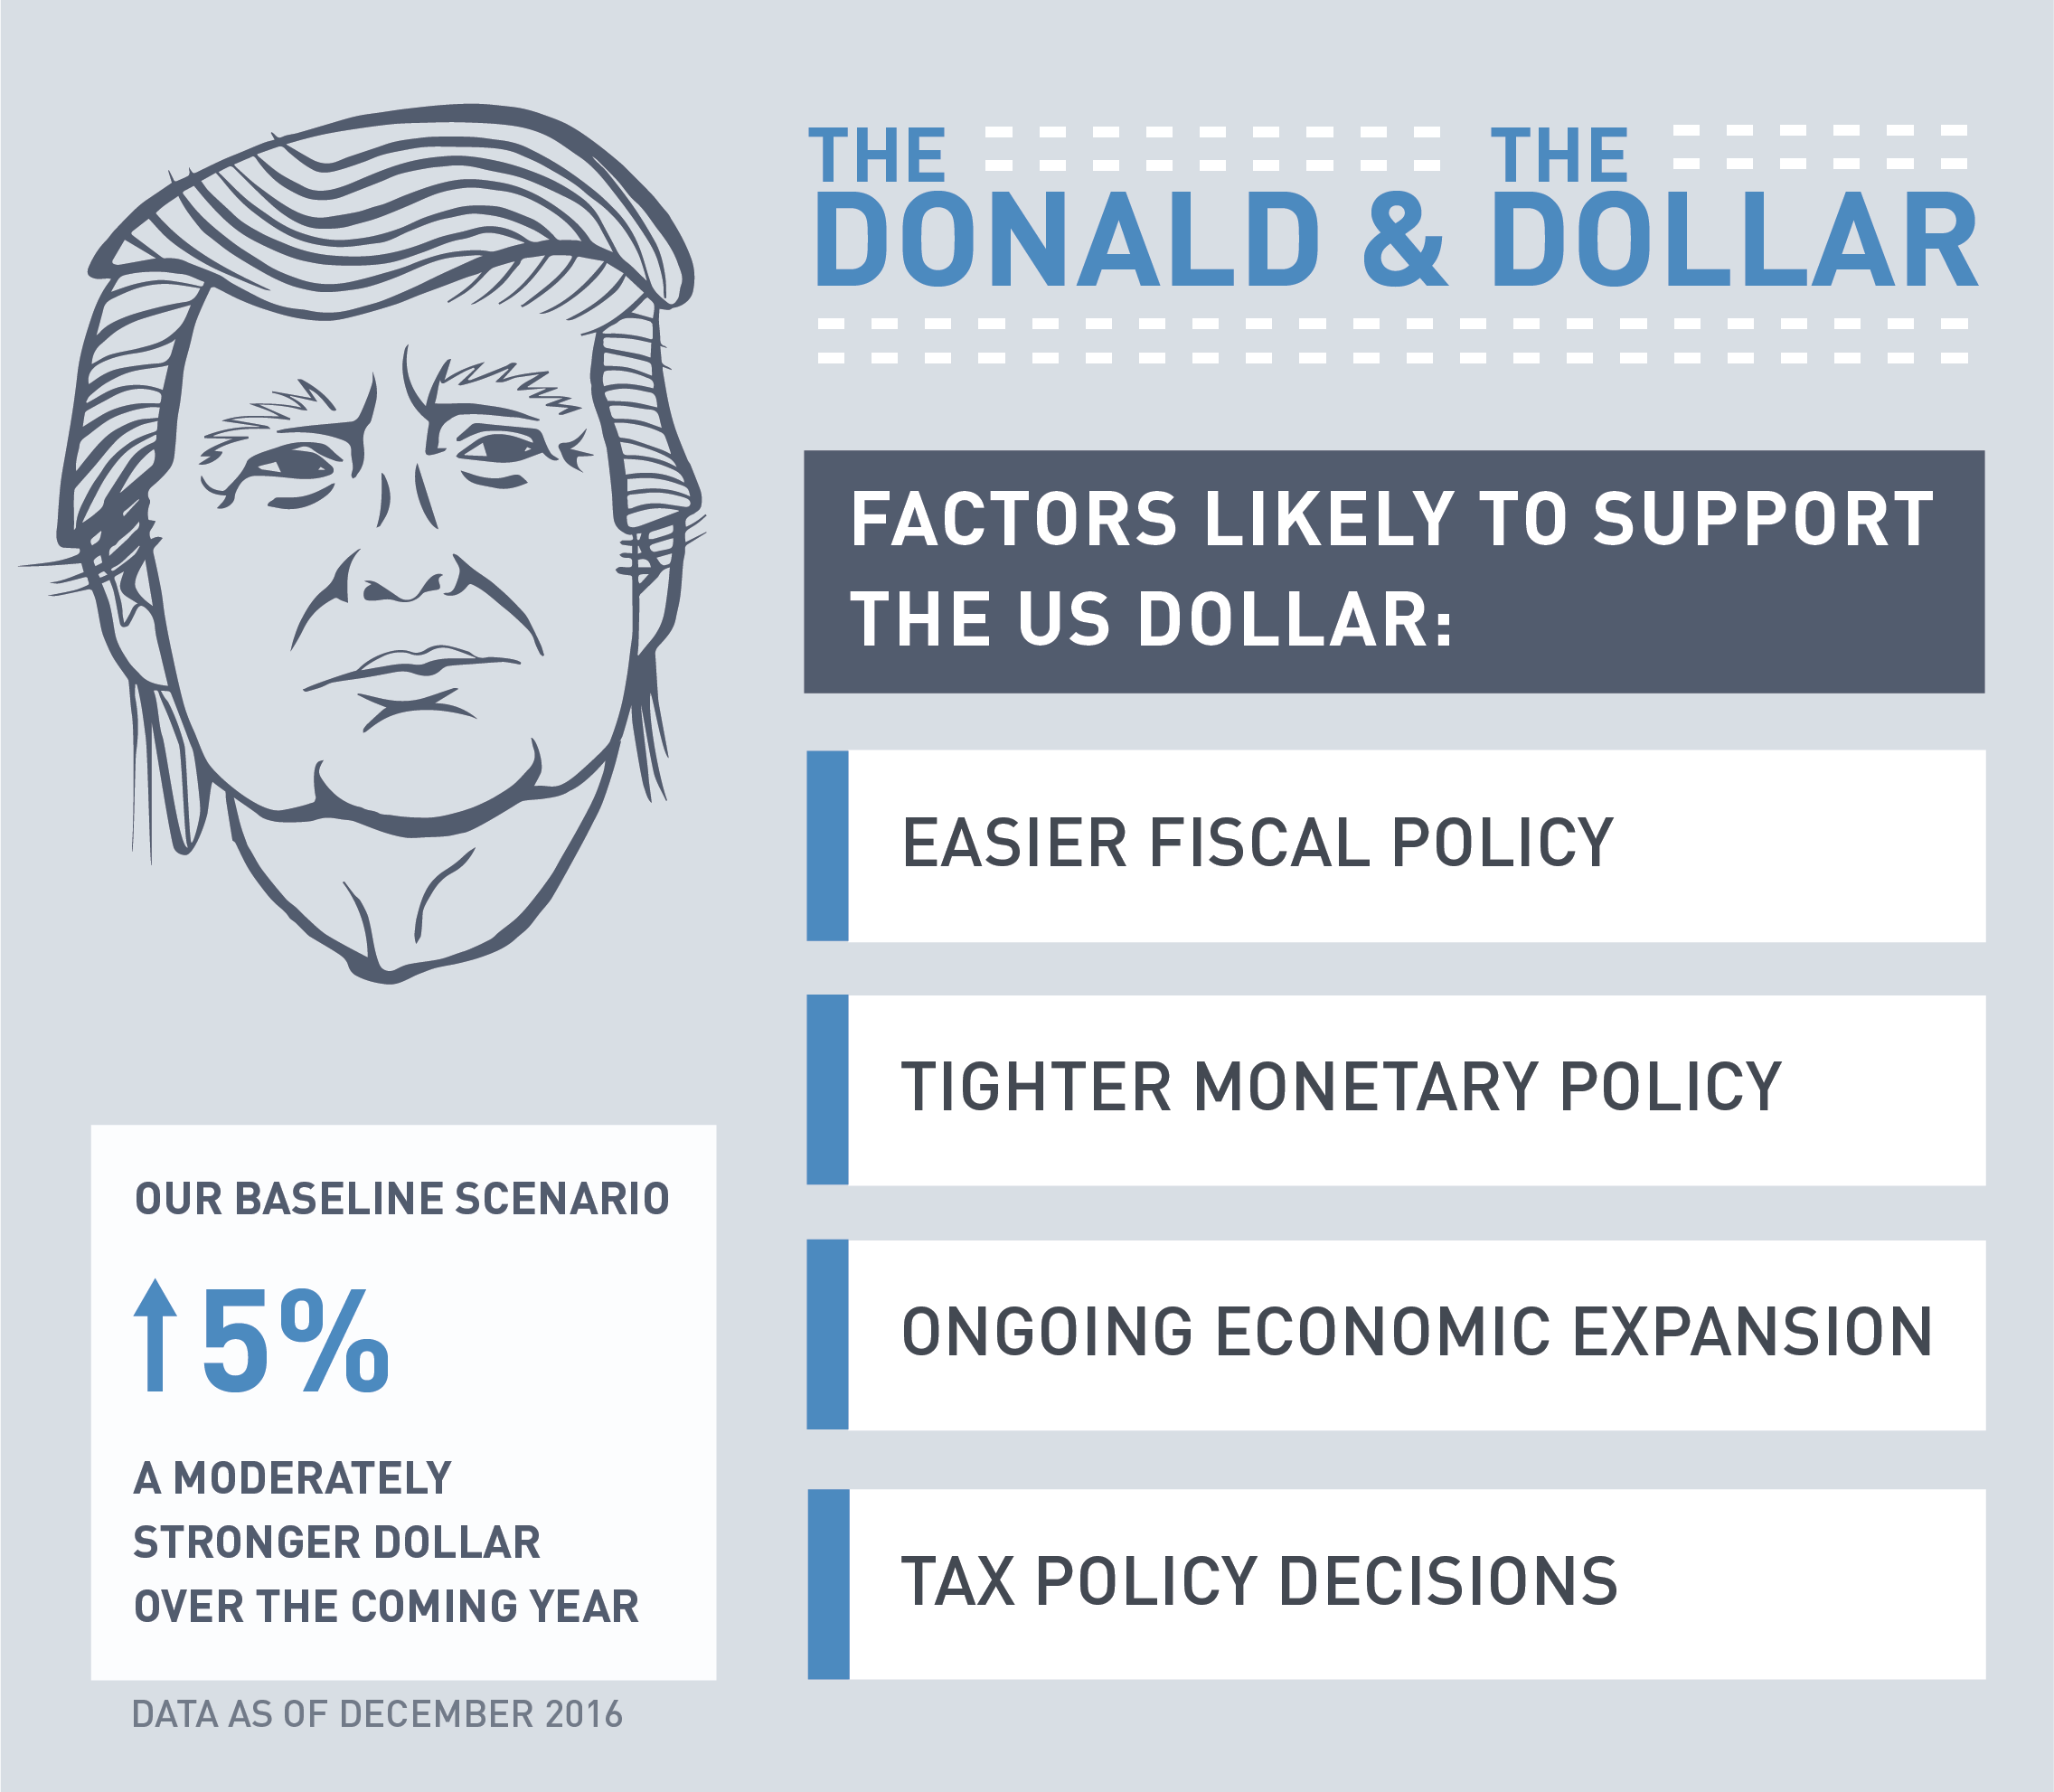 Donald and the DollarV2.png